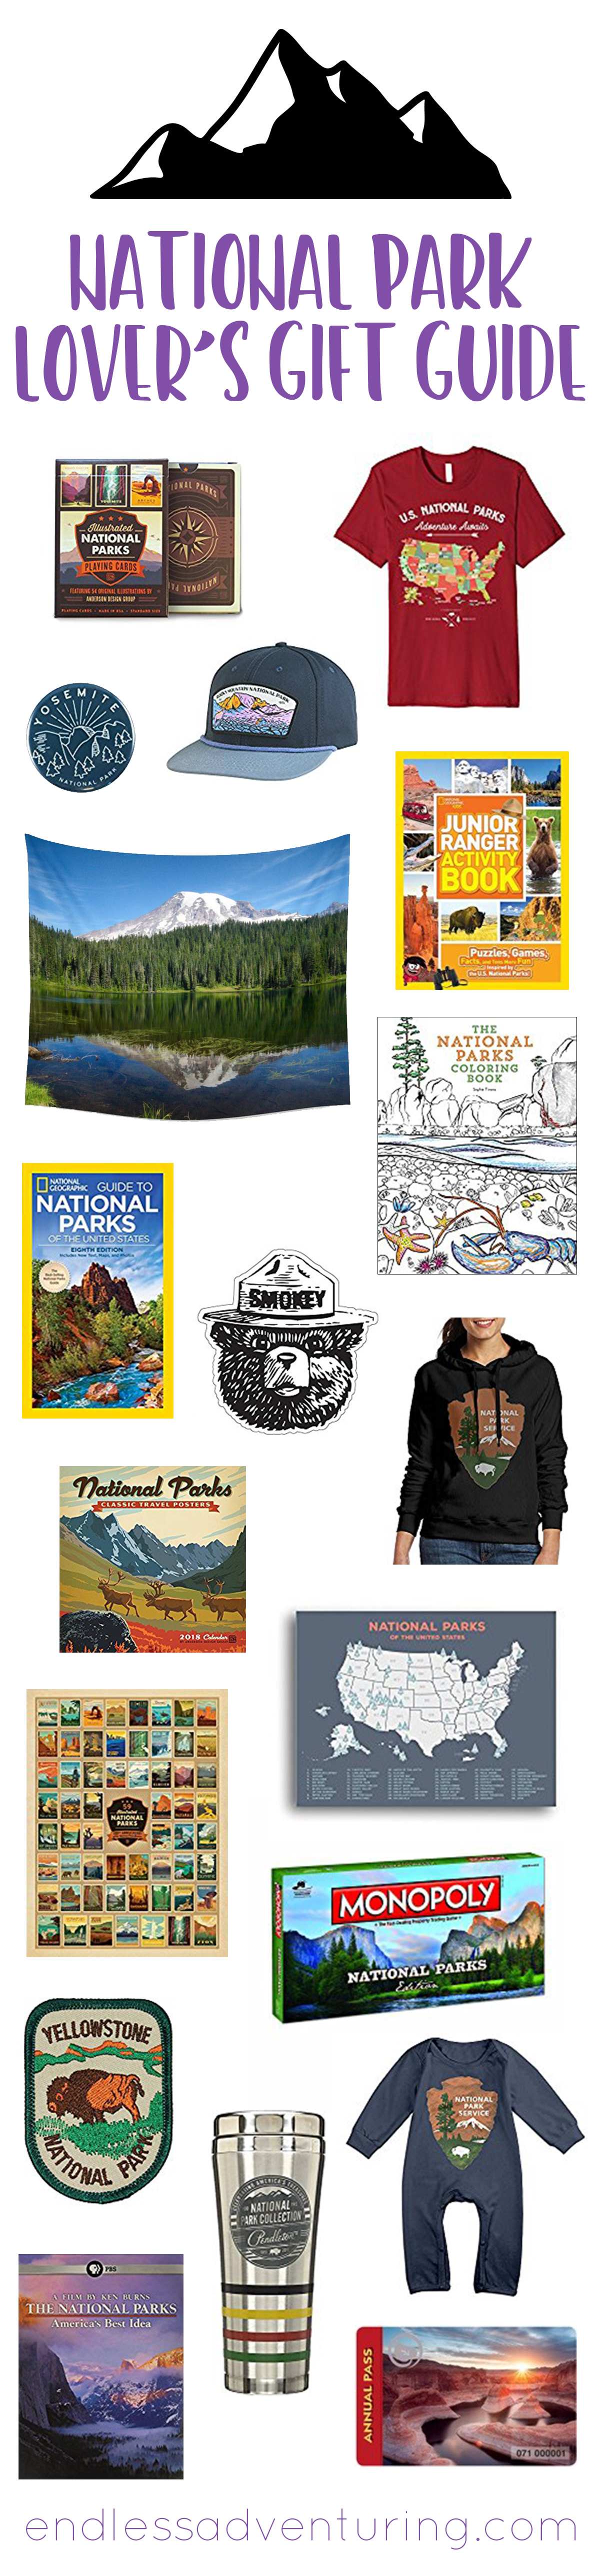 National Park Lovers' Gift Guide - American National Parks, Outdoor Recreation, Outdoor Travel, Outdoor Adventure, US Travel, National Parks, Gift Ideas, Present Ideas, Nature Lover, Birthday Gift, Birthday Presents, Holiday Gifts, Holiday Presents